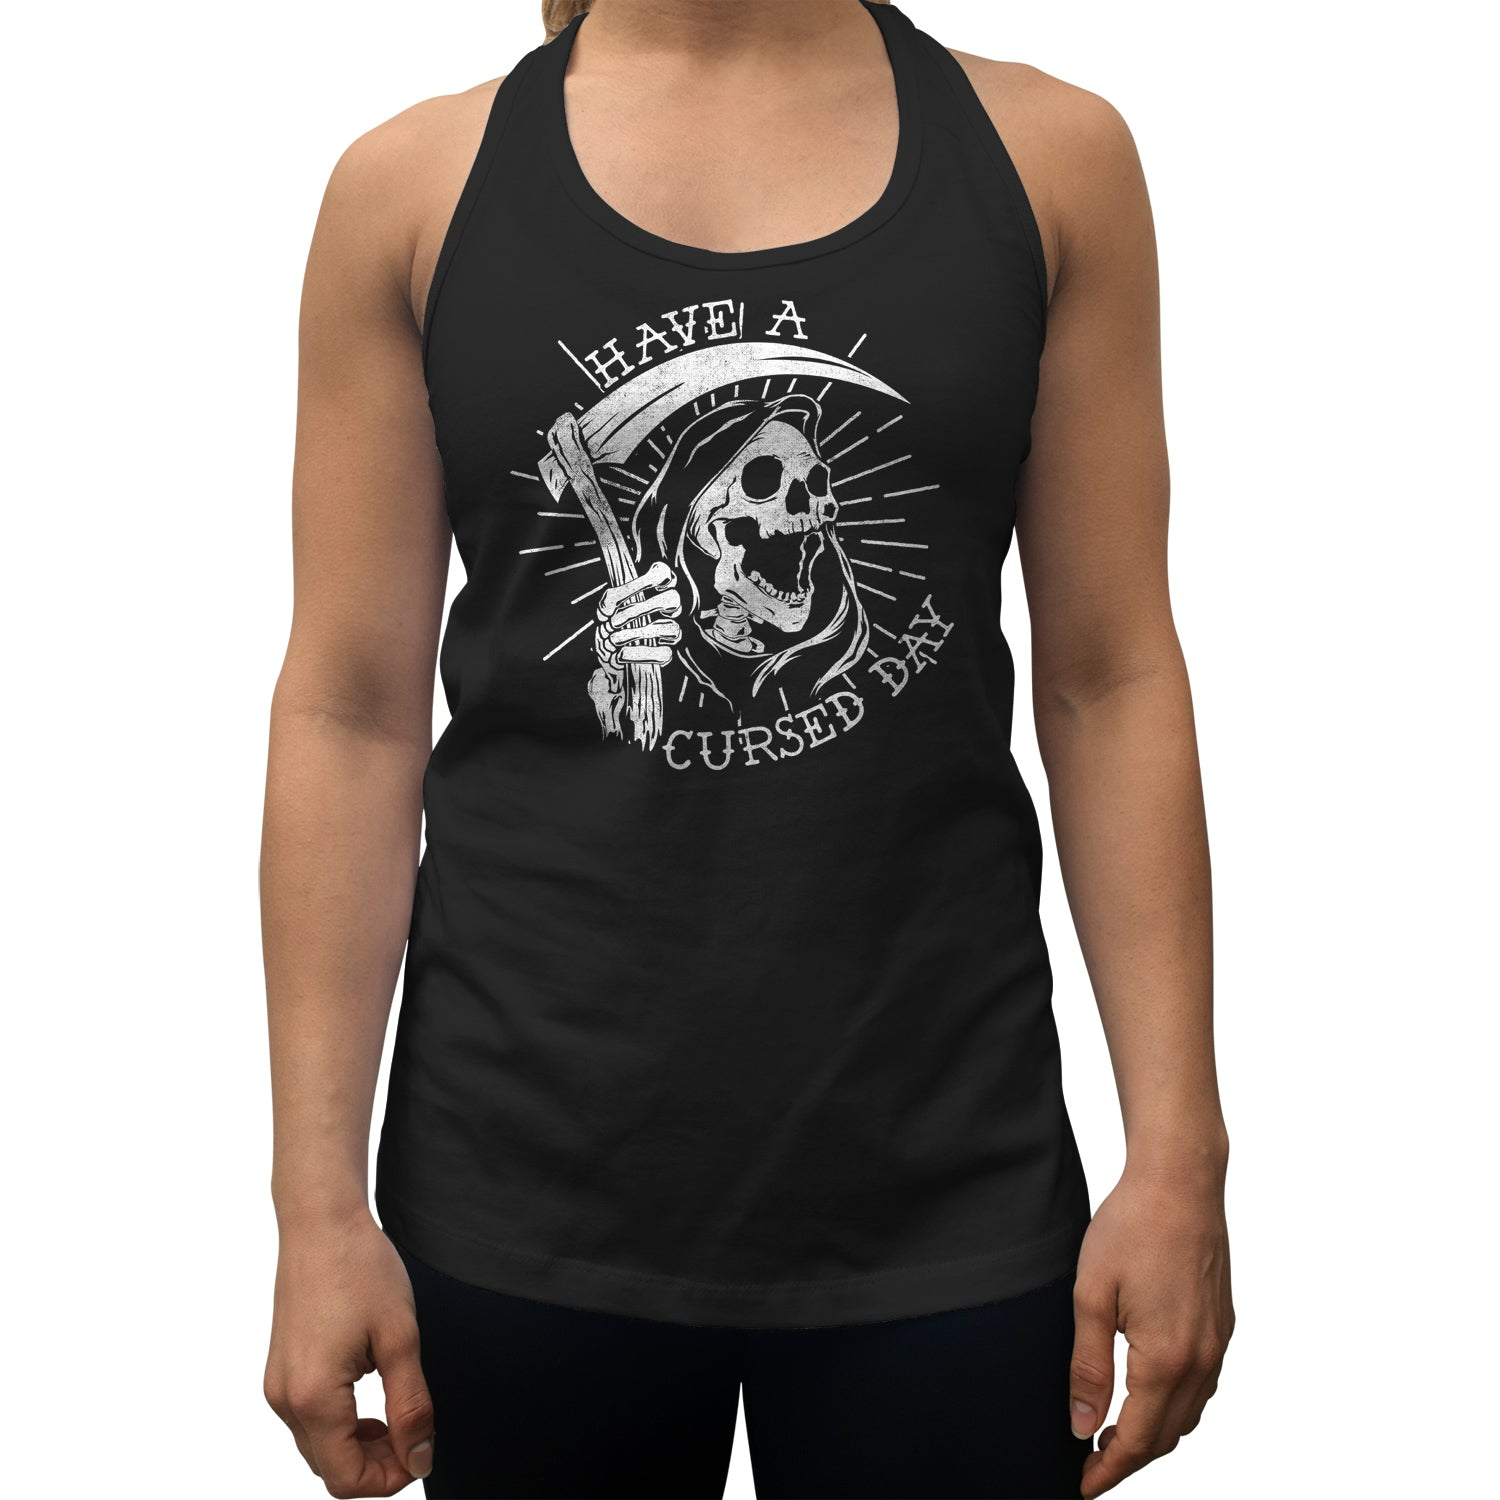 Women's Have a Cursed Day Racerback Tank Top